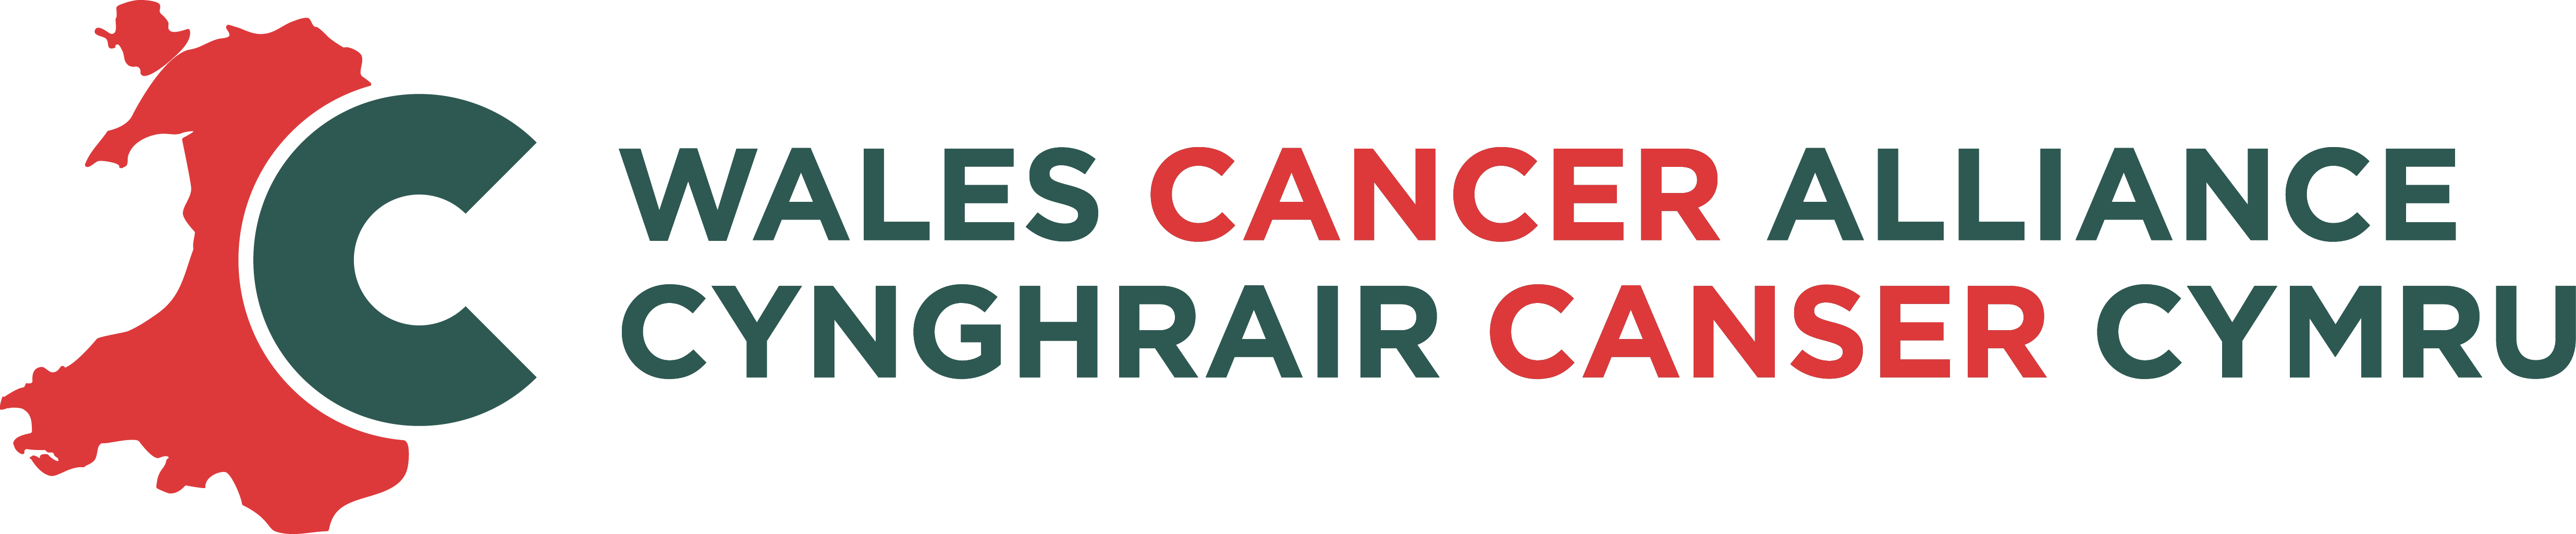 Wales Cancer Alliance